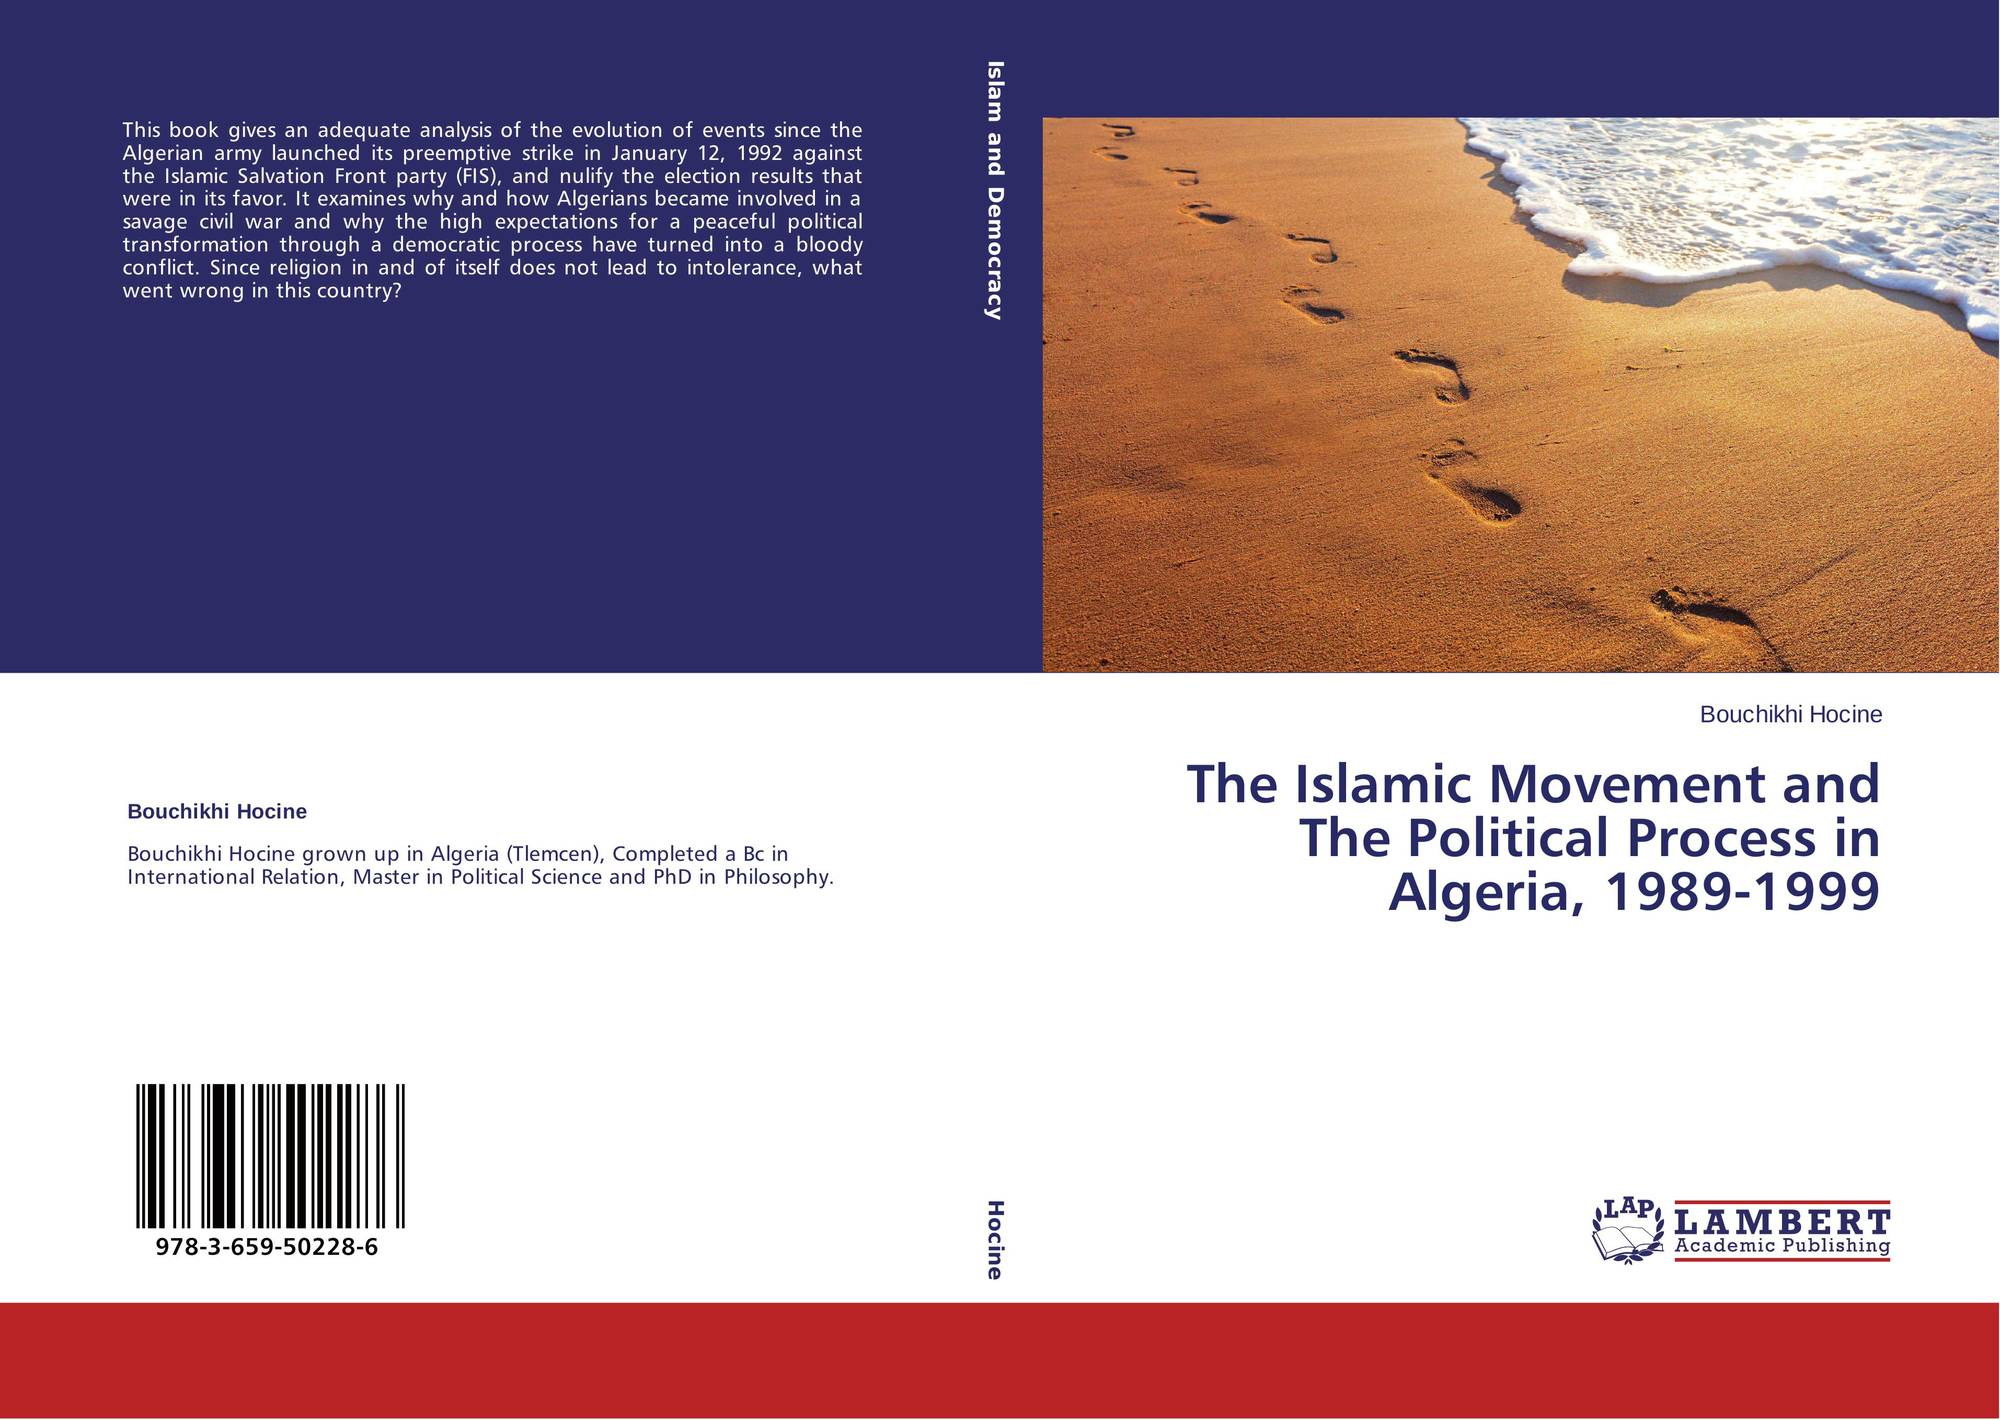 an analysis on the failed political islam in algeria The question whether political islam has failed or not due to the internal structure of the islamic political movement, in either algeria or any other country in the islamic world, is an important question for the analysis of the politicized islamic phenomena.